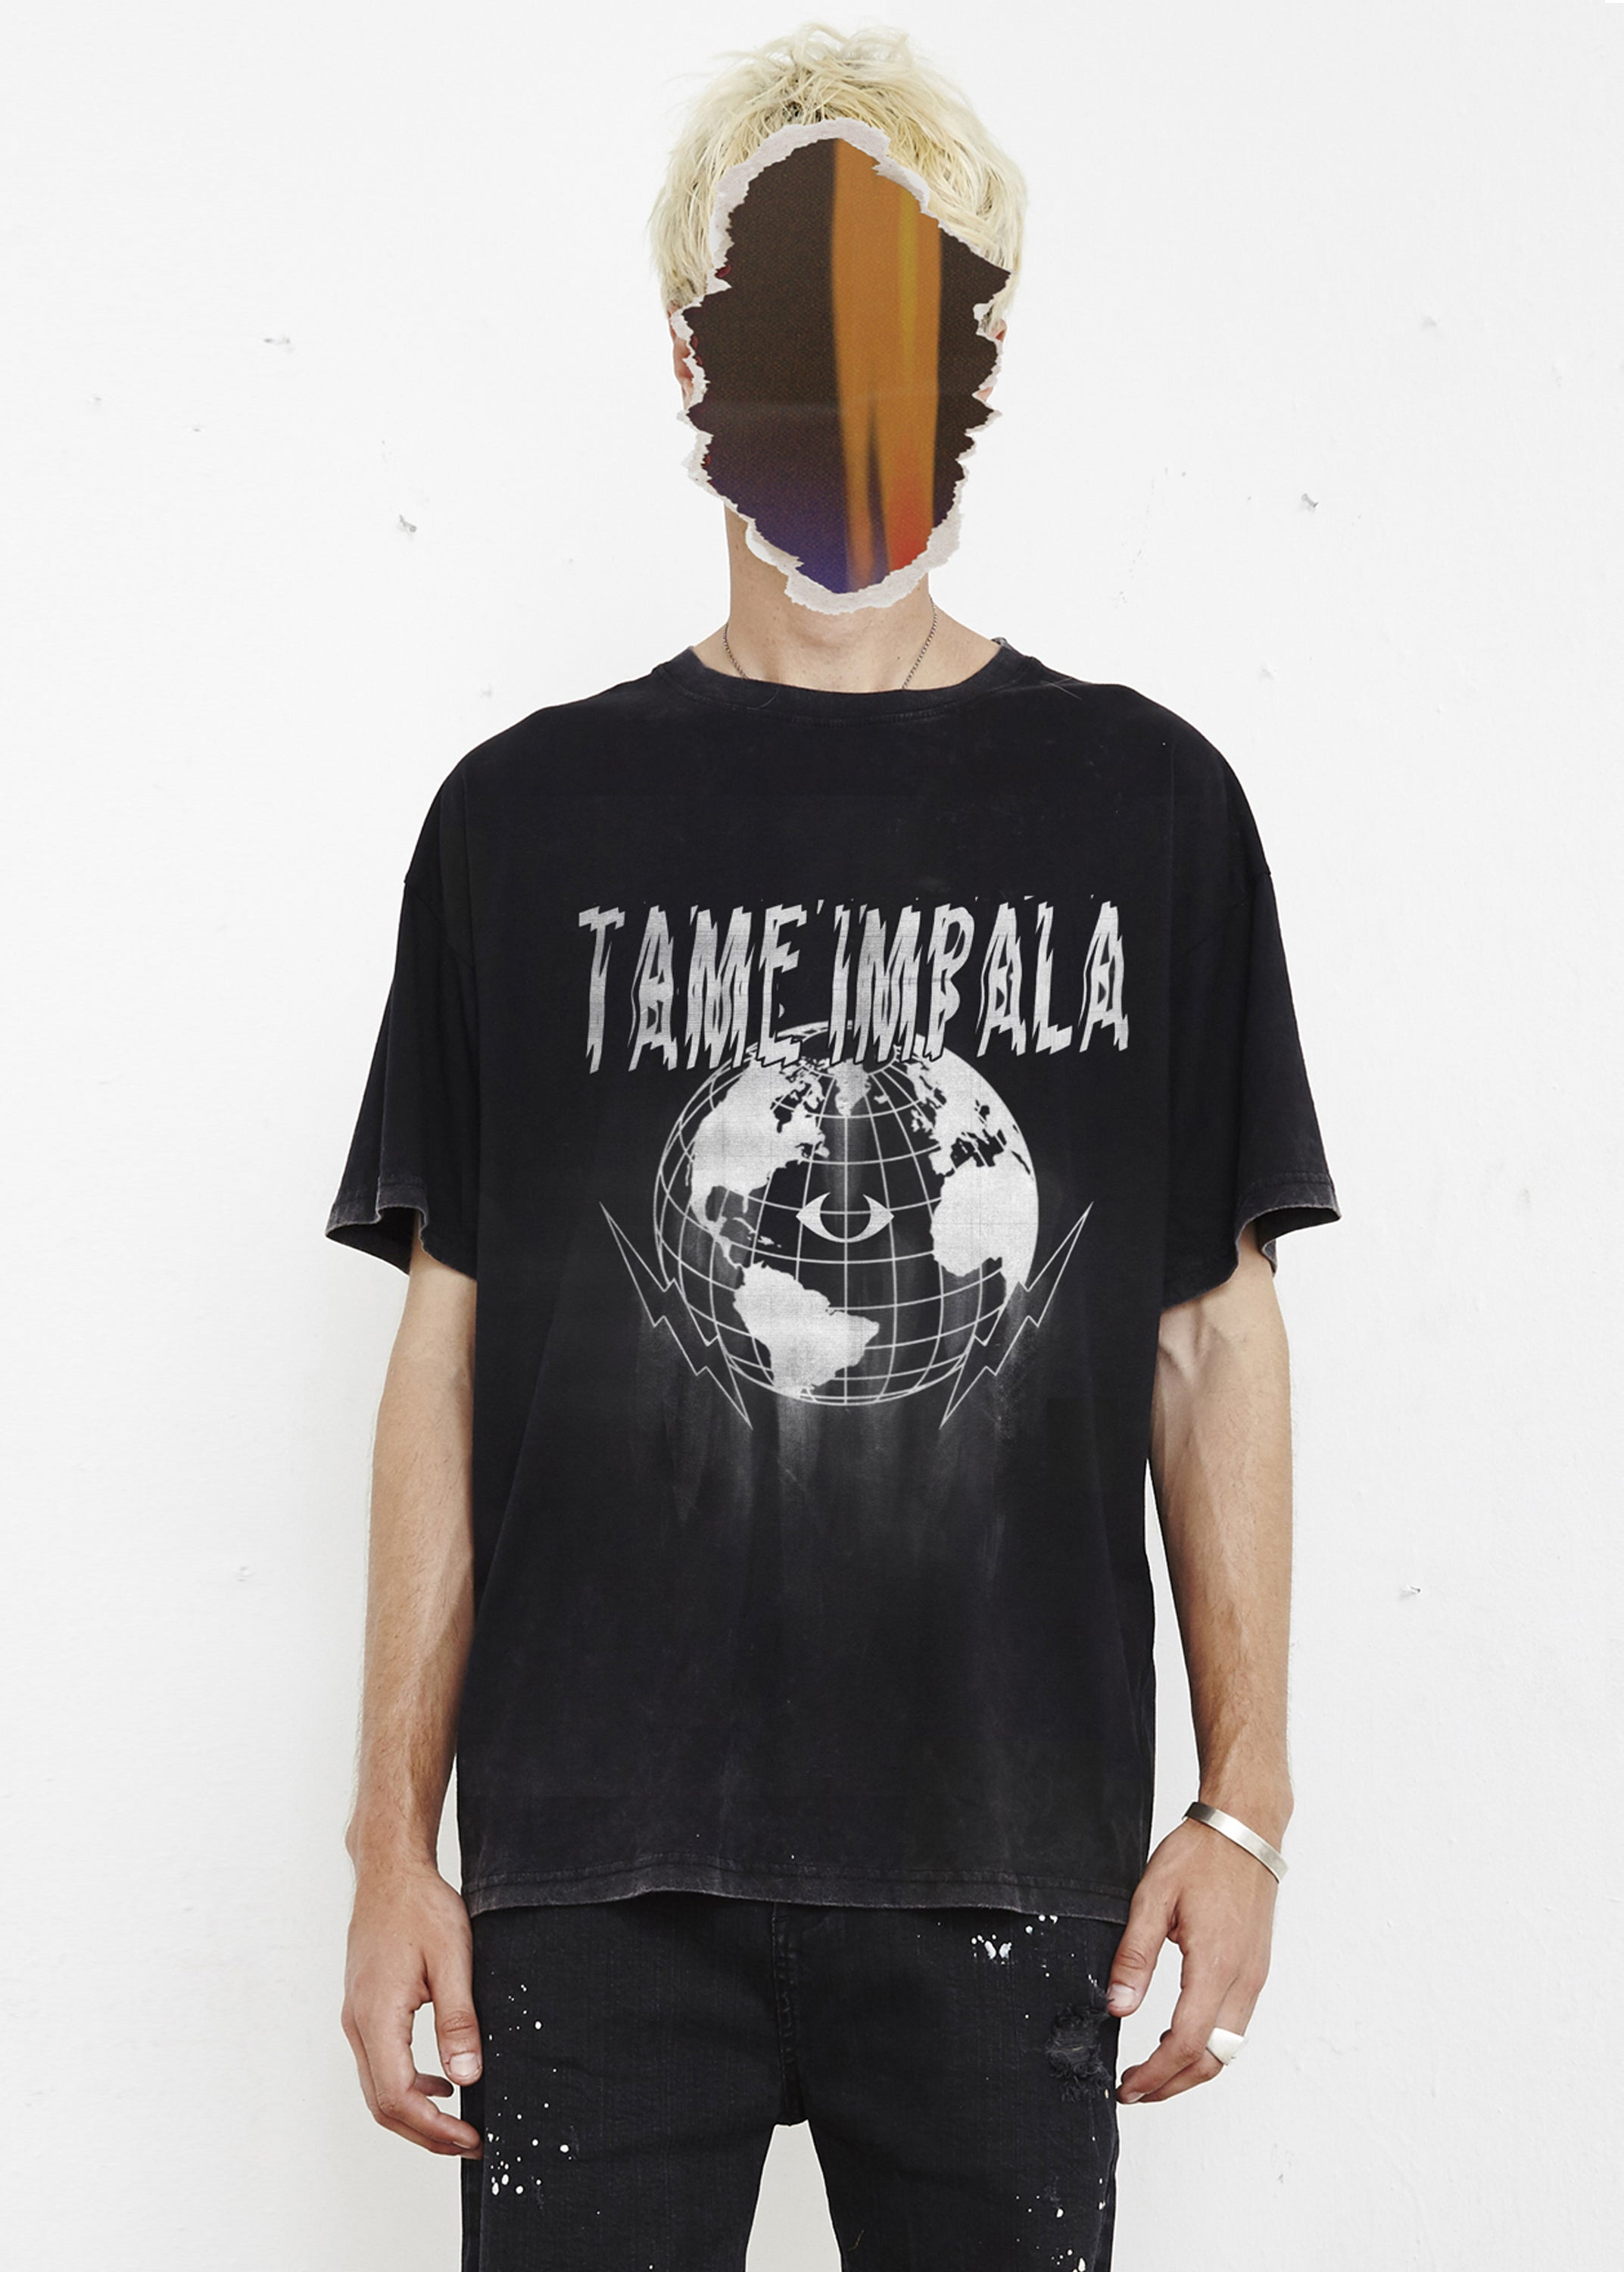 THE PEOPLE VS X TAME IMPALA GLOBE TEE - WHITE